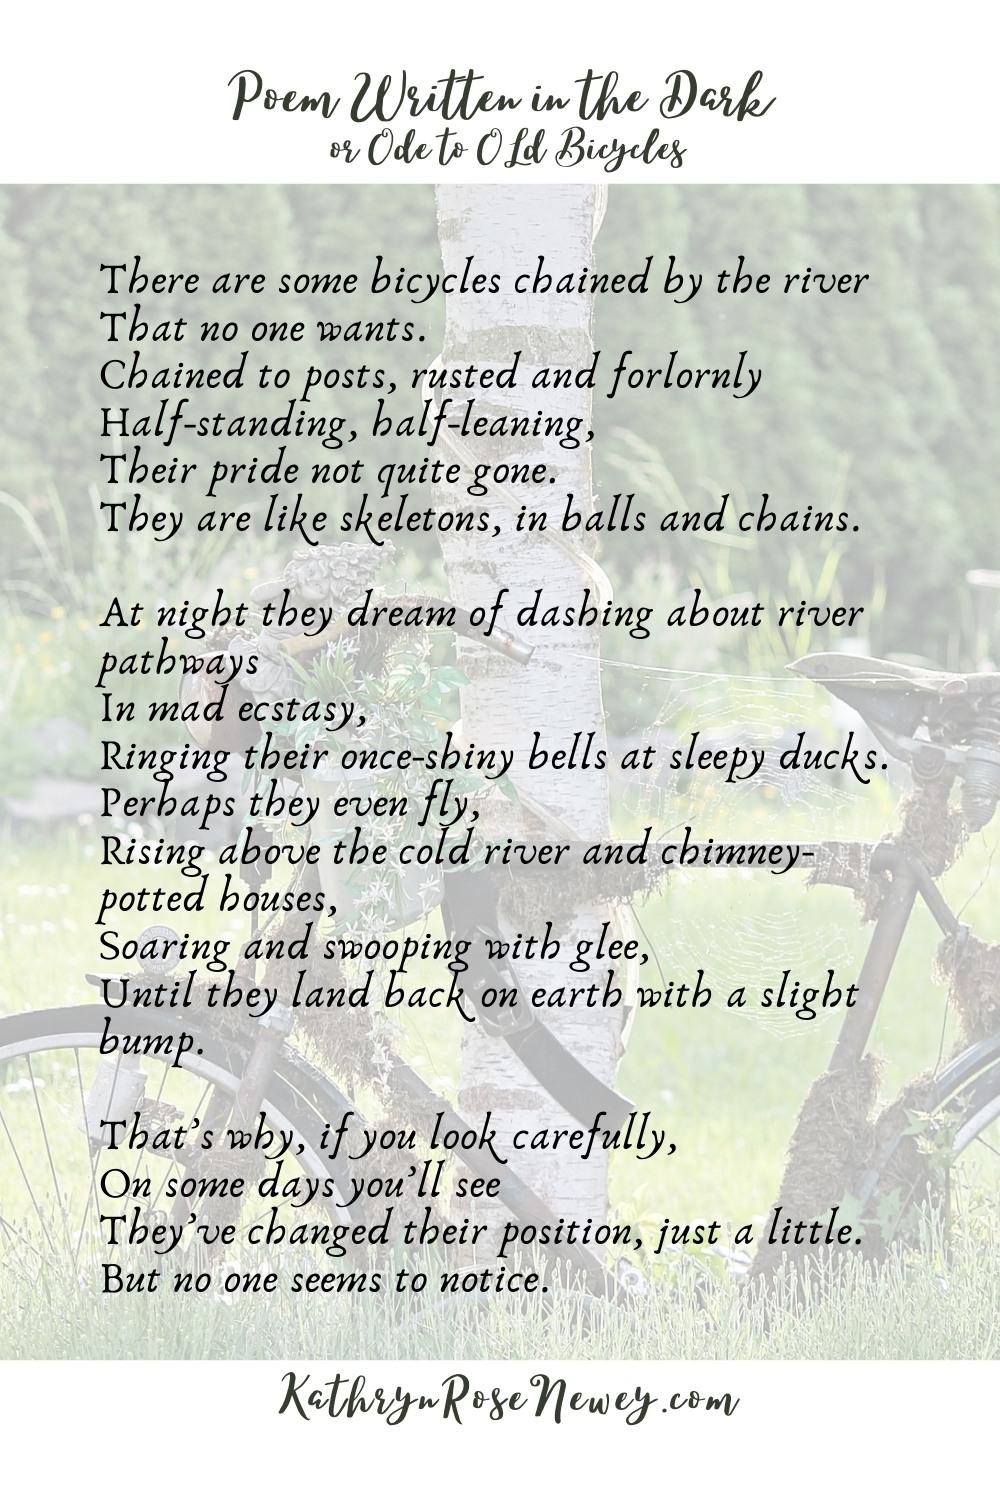 Poem written in Dark - Bicycles Ode by Kathryn Rose Newey